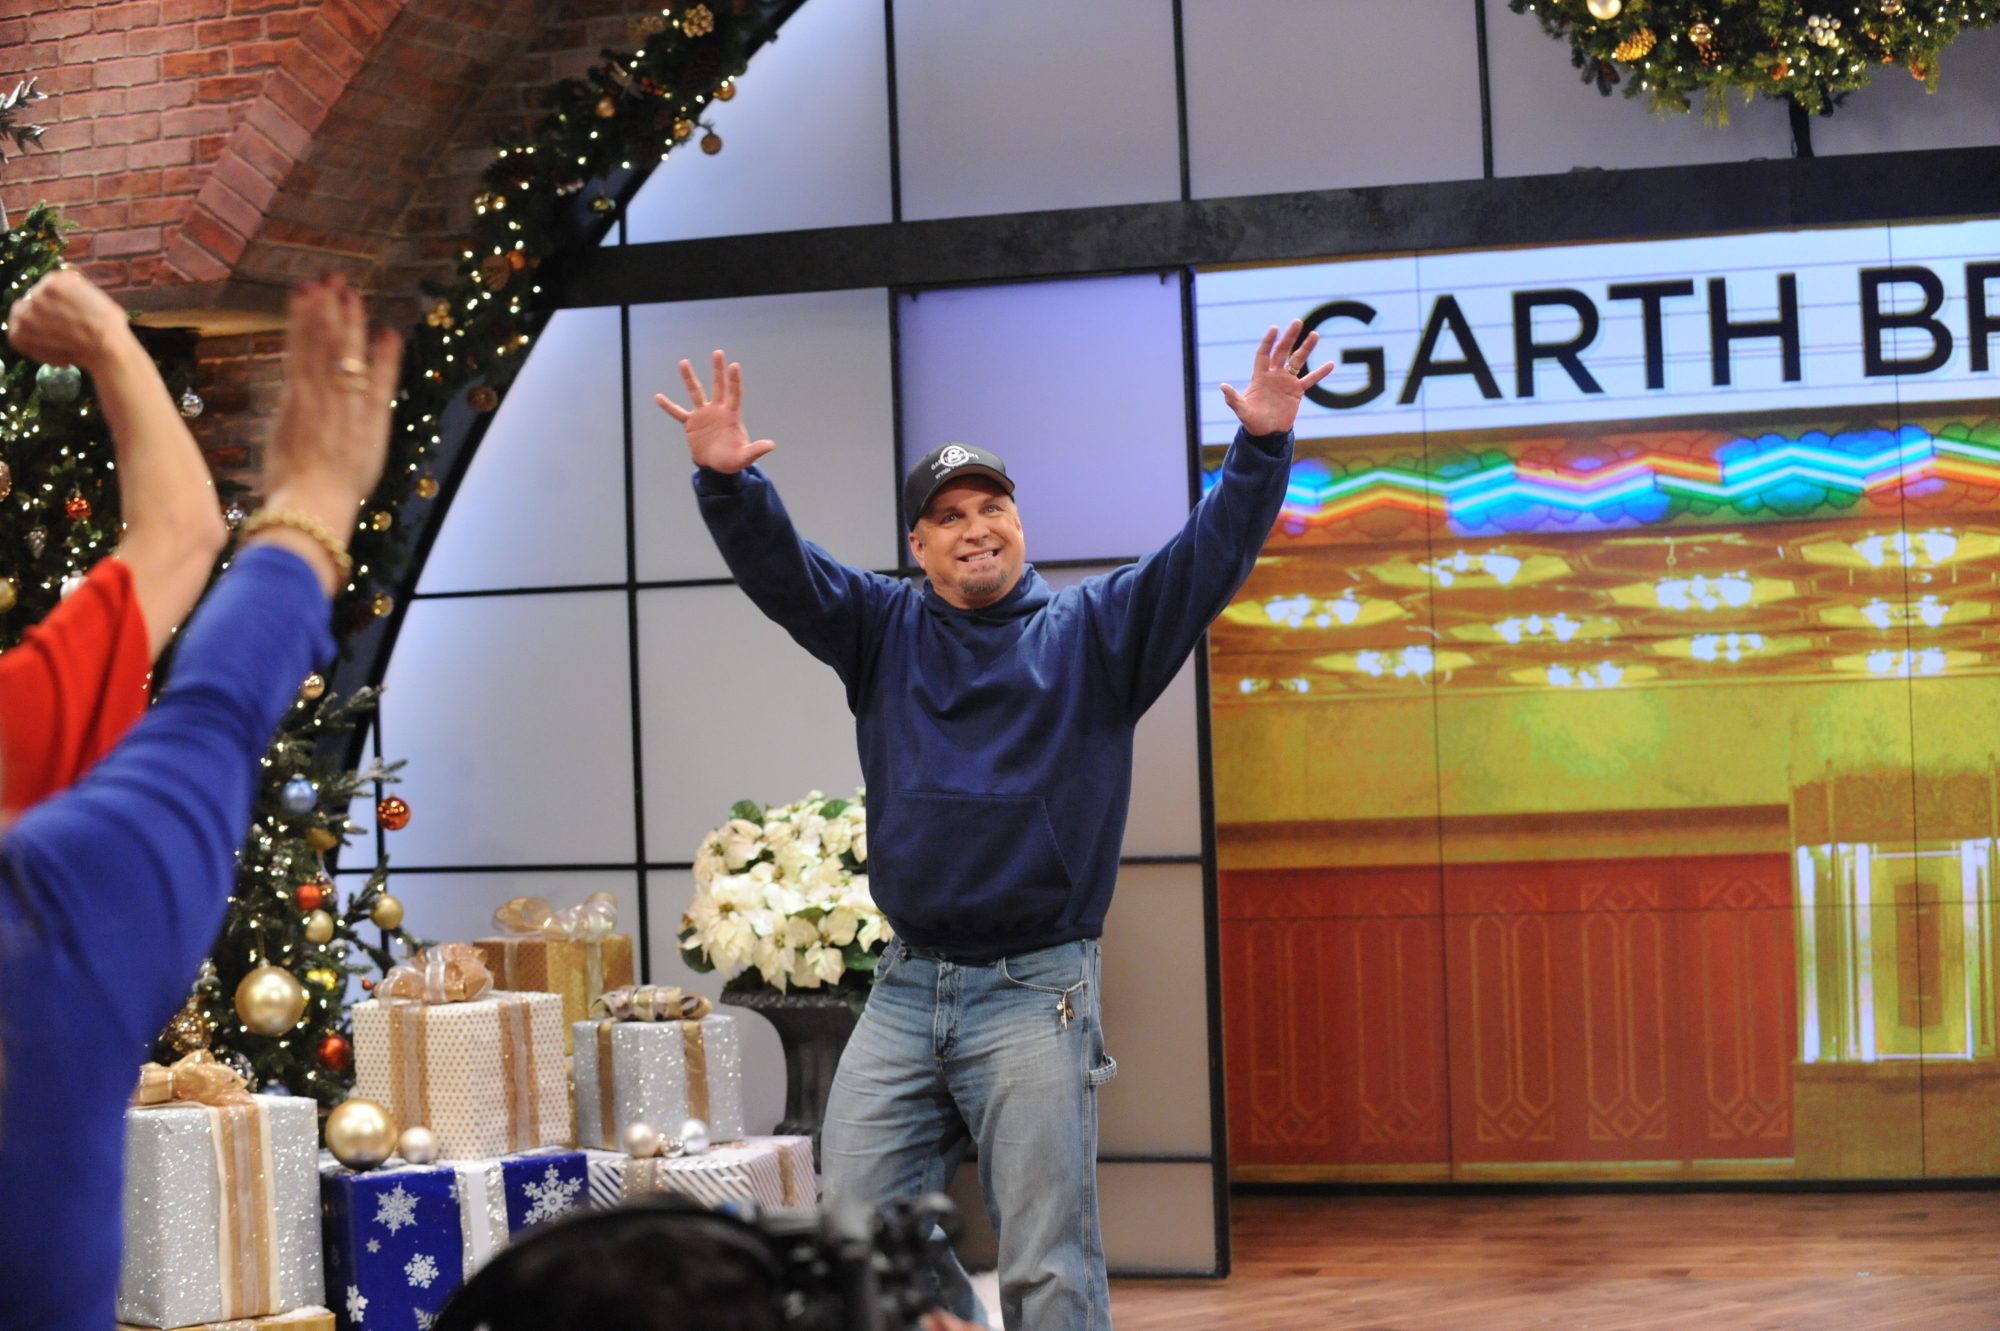 20. Garth Brooks - Country Music Singer/Songwriter